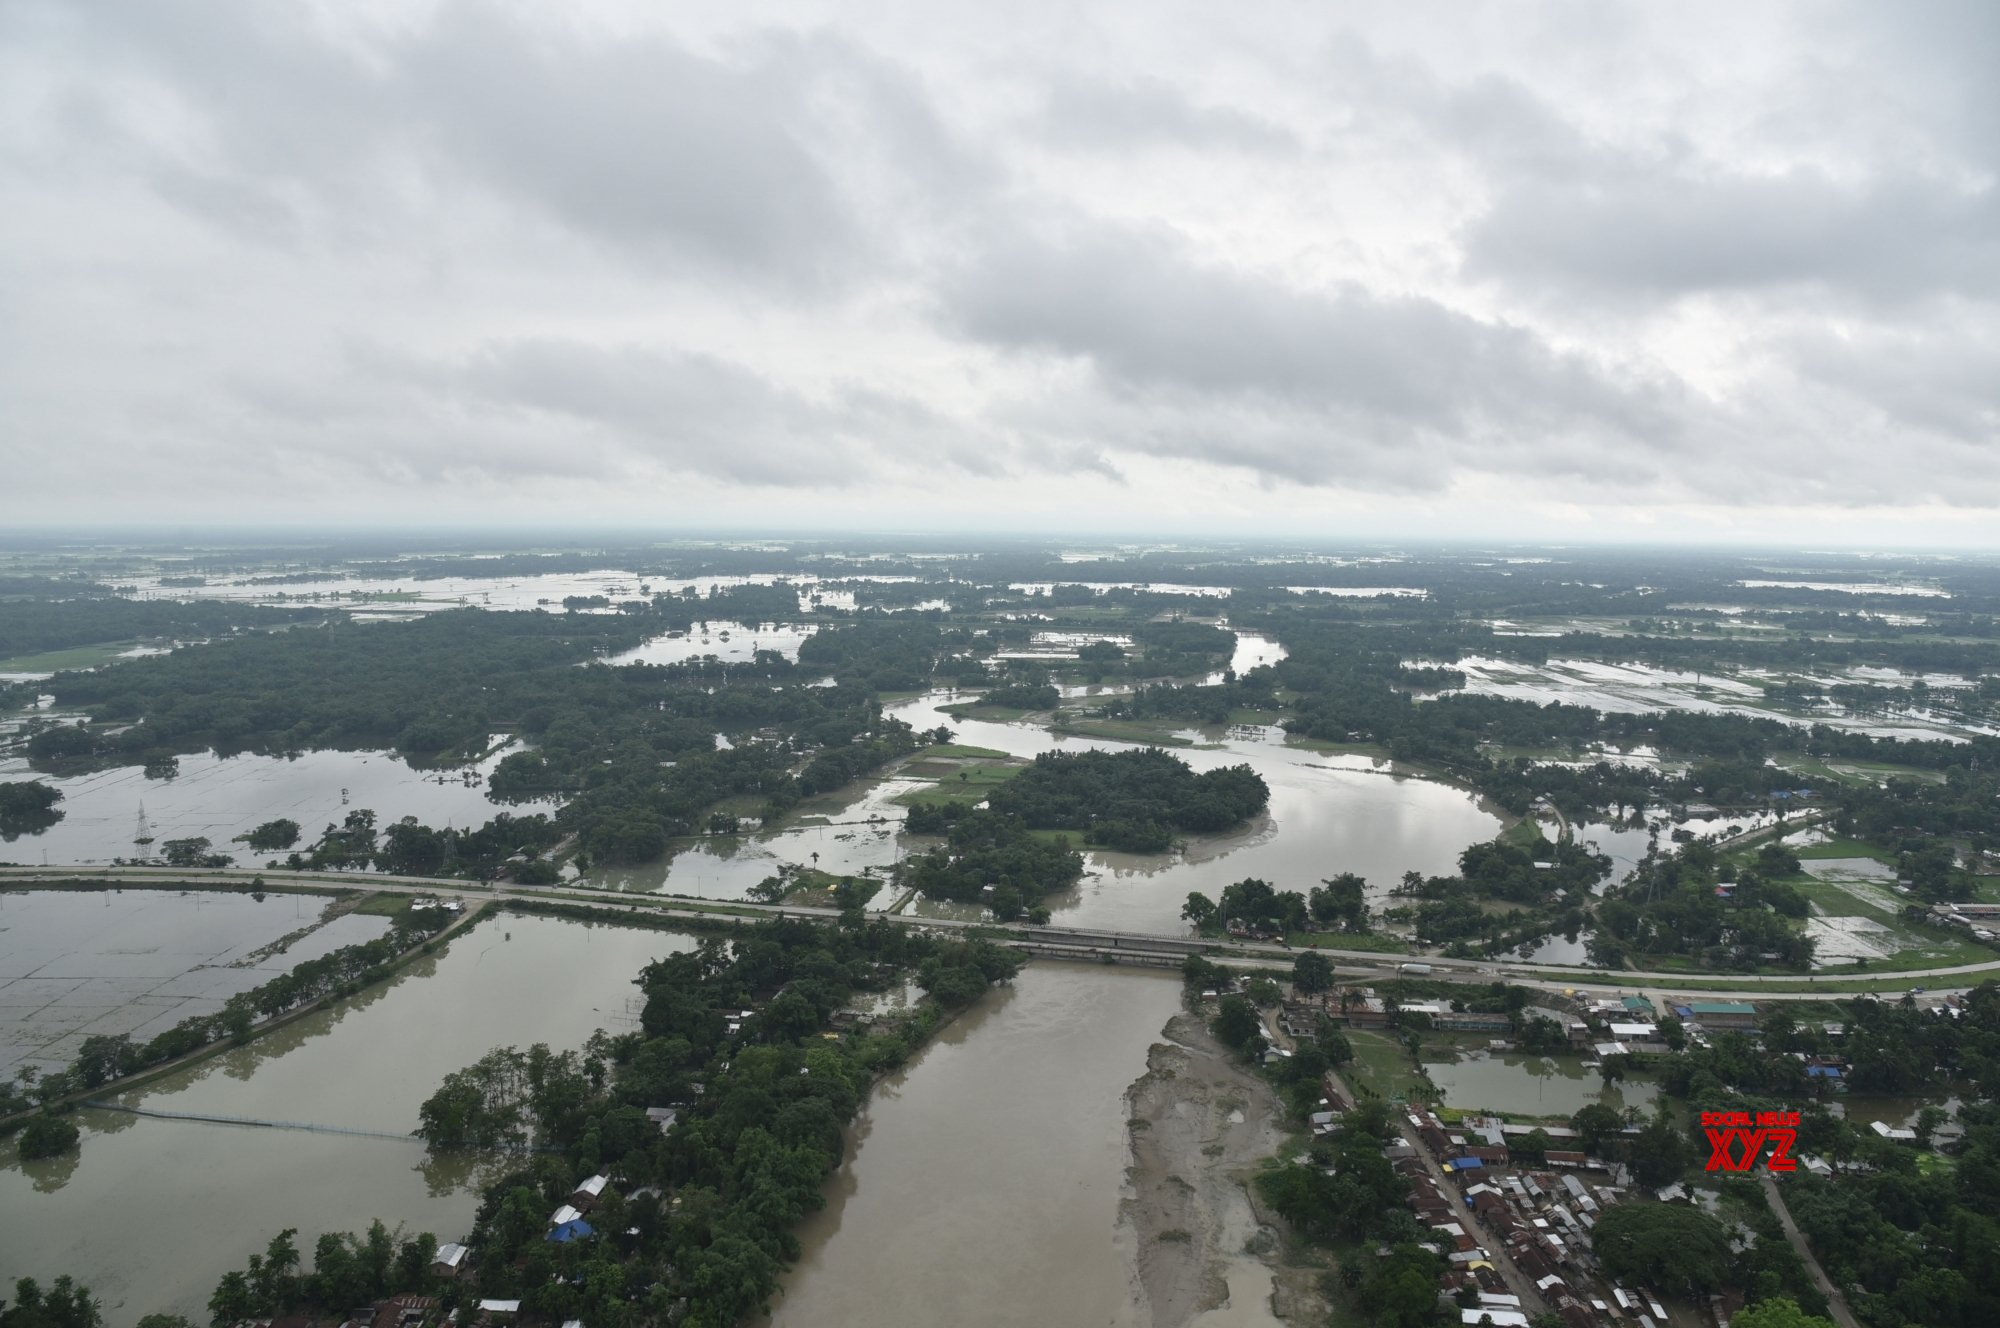 Assam flood situation improving, affected tally dips to 9 lakh